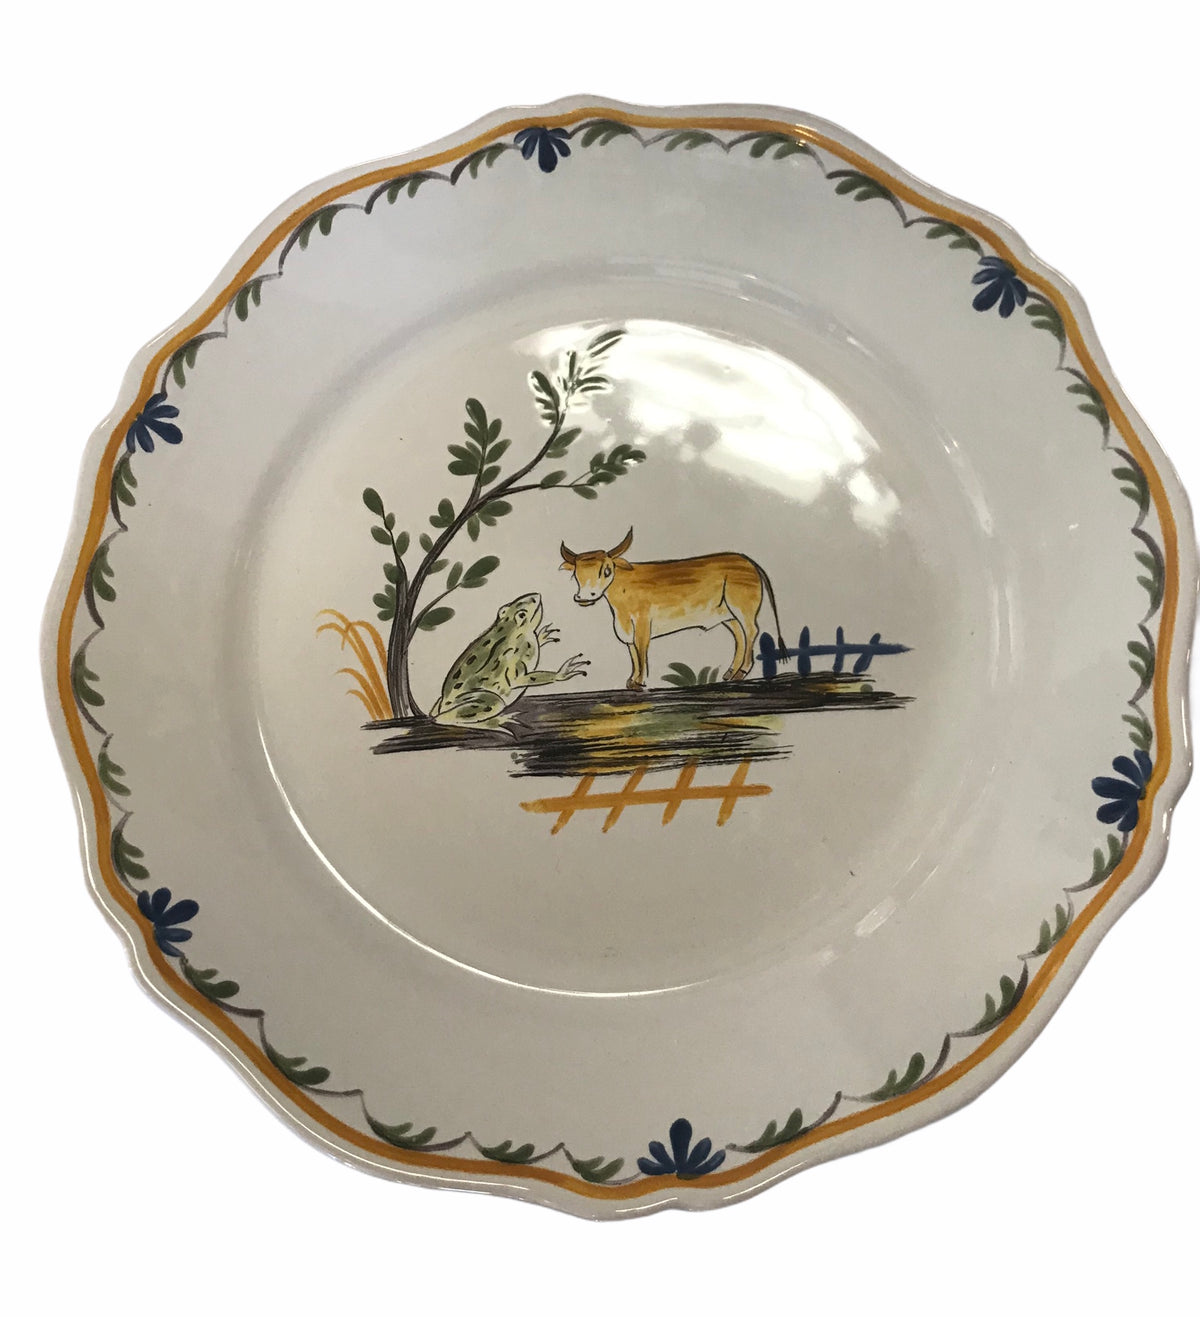 S/12 Motton de Grien Plates from Rouard Paris